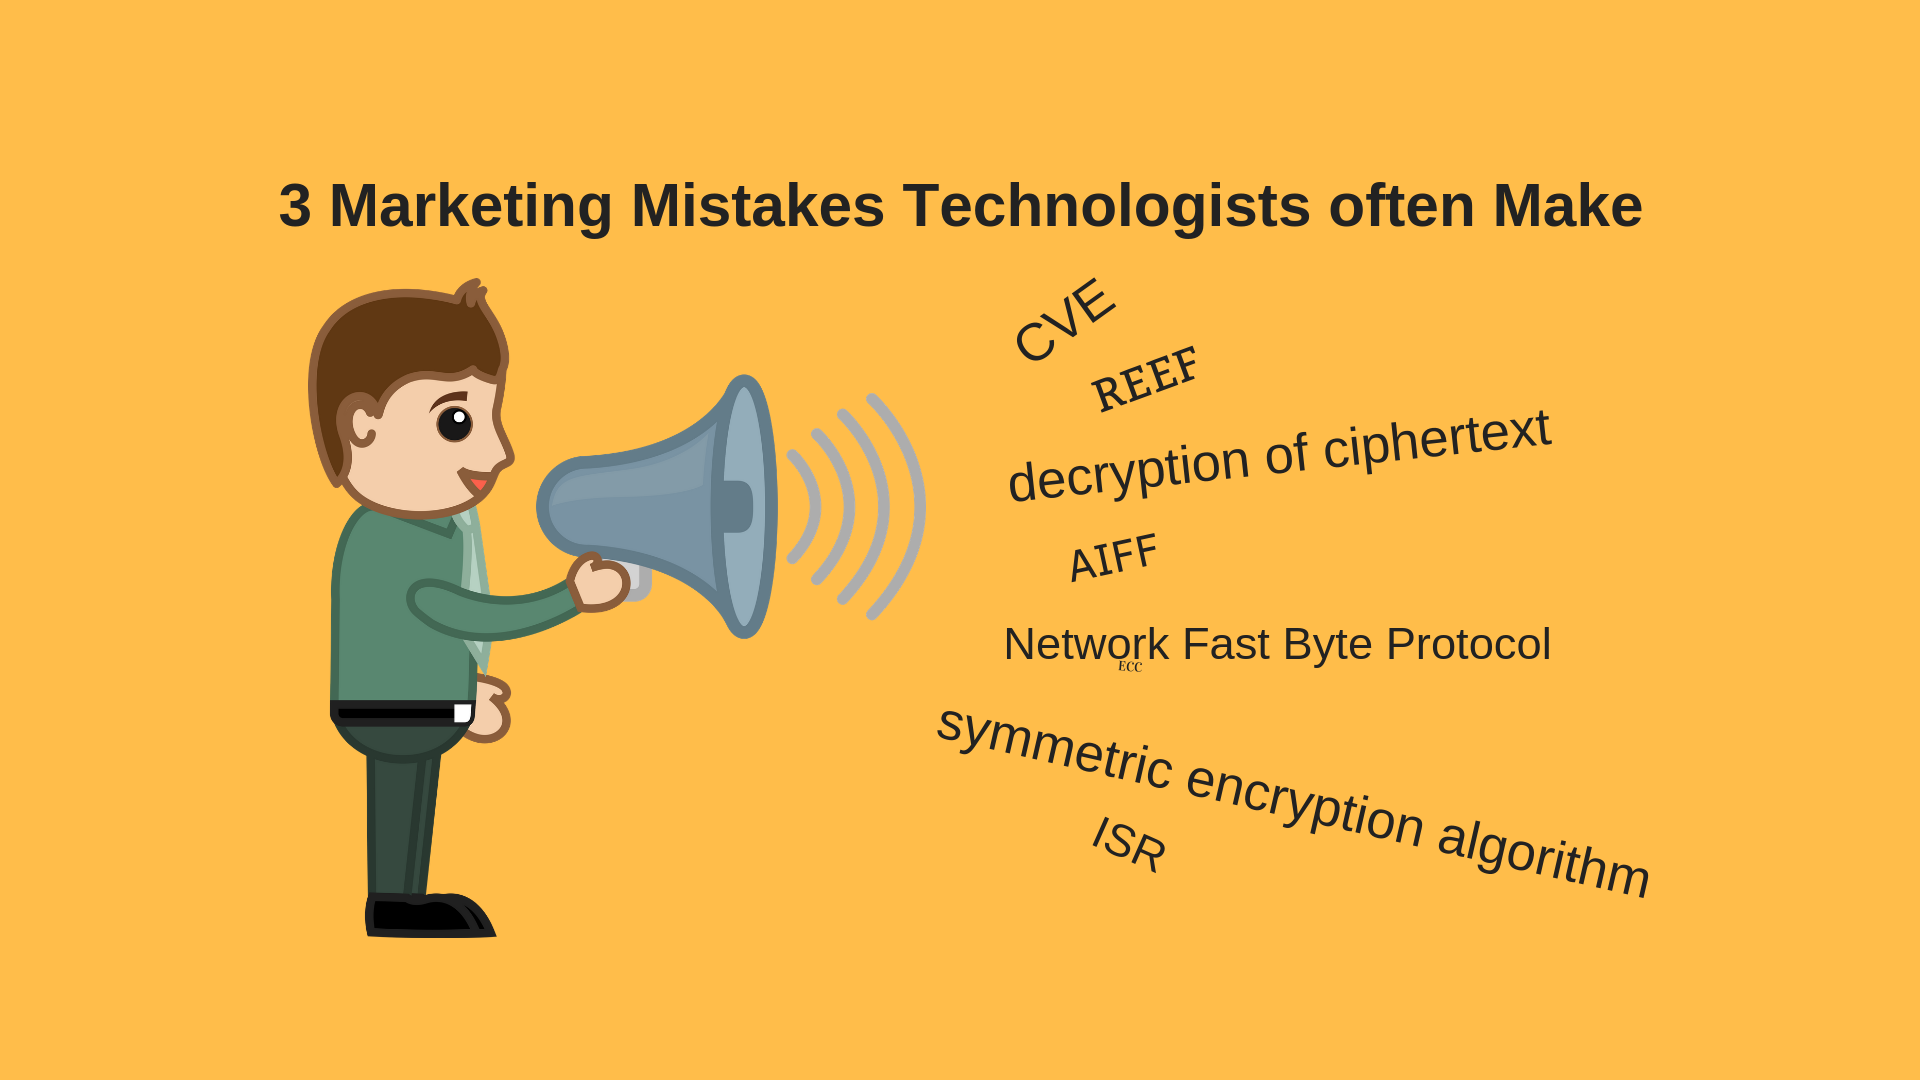 Marketing-Mistakes-by-Technologists